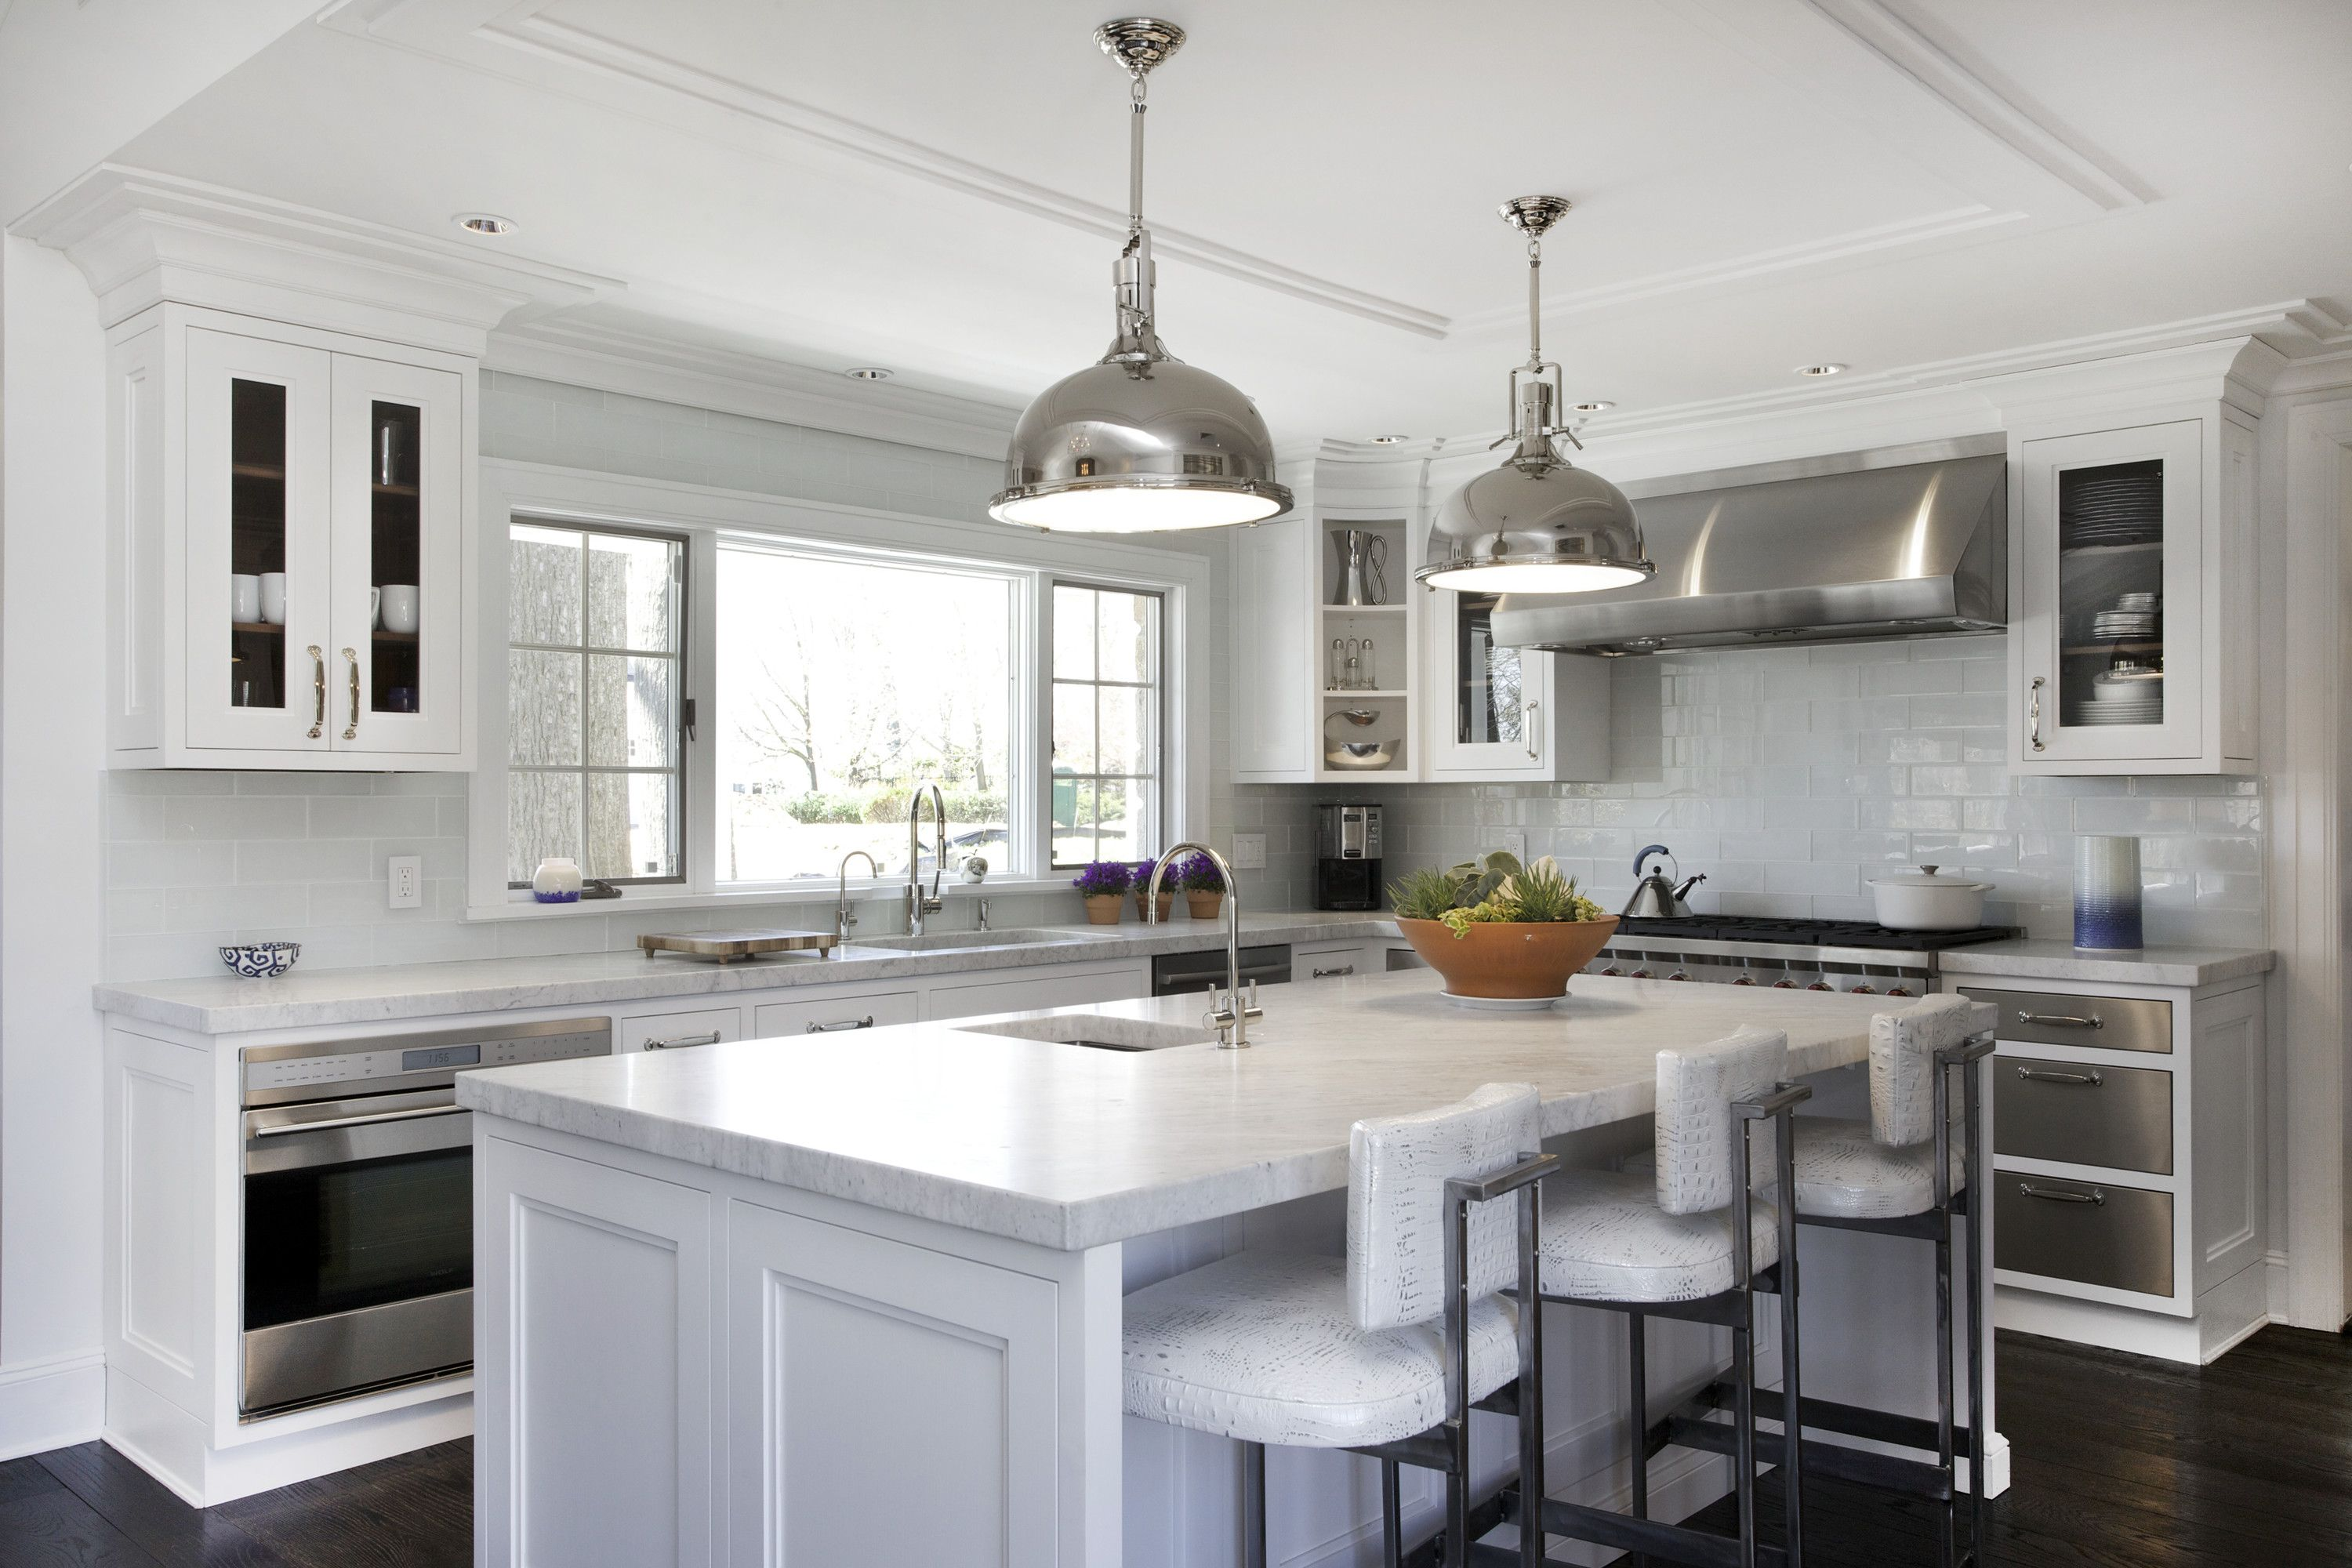 Kitchens collection of kitchens designed by our team modern